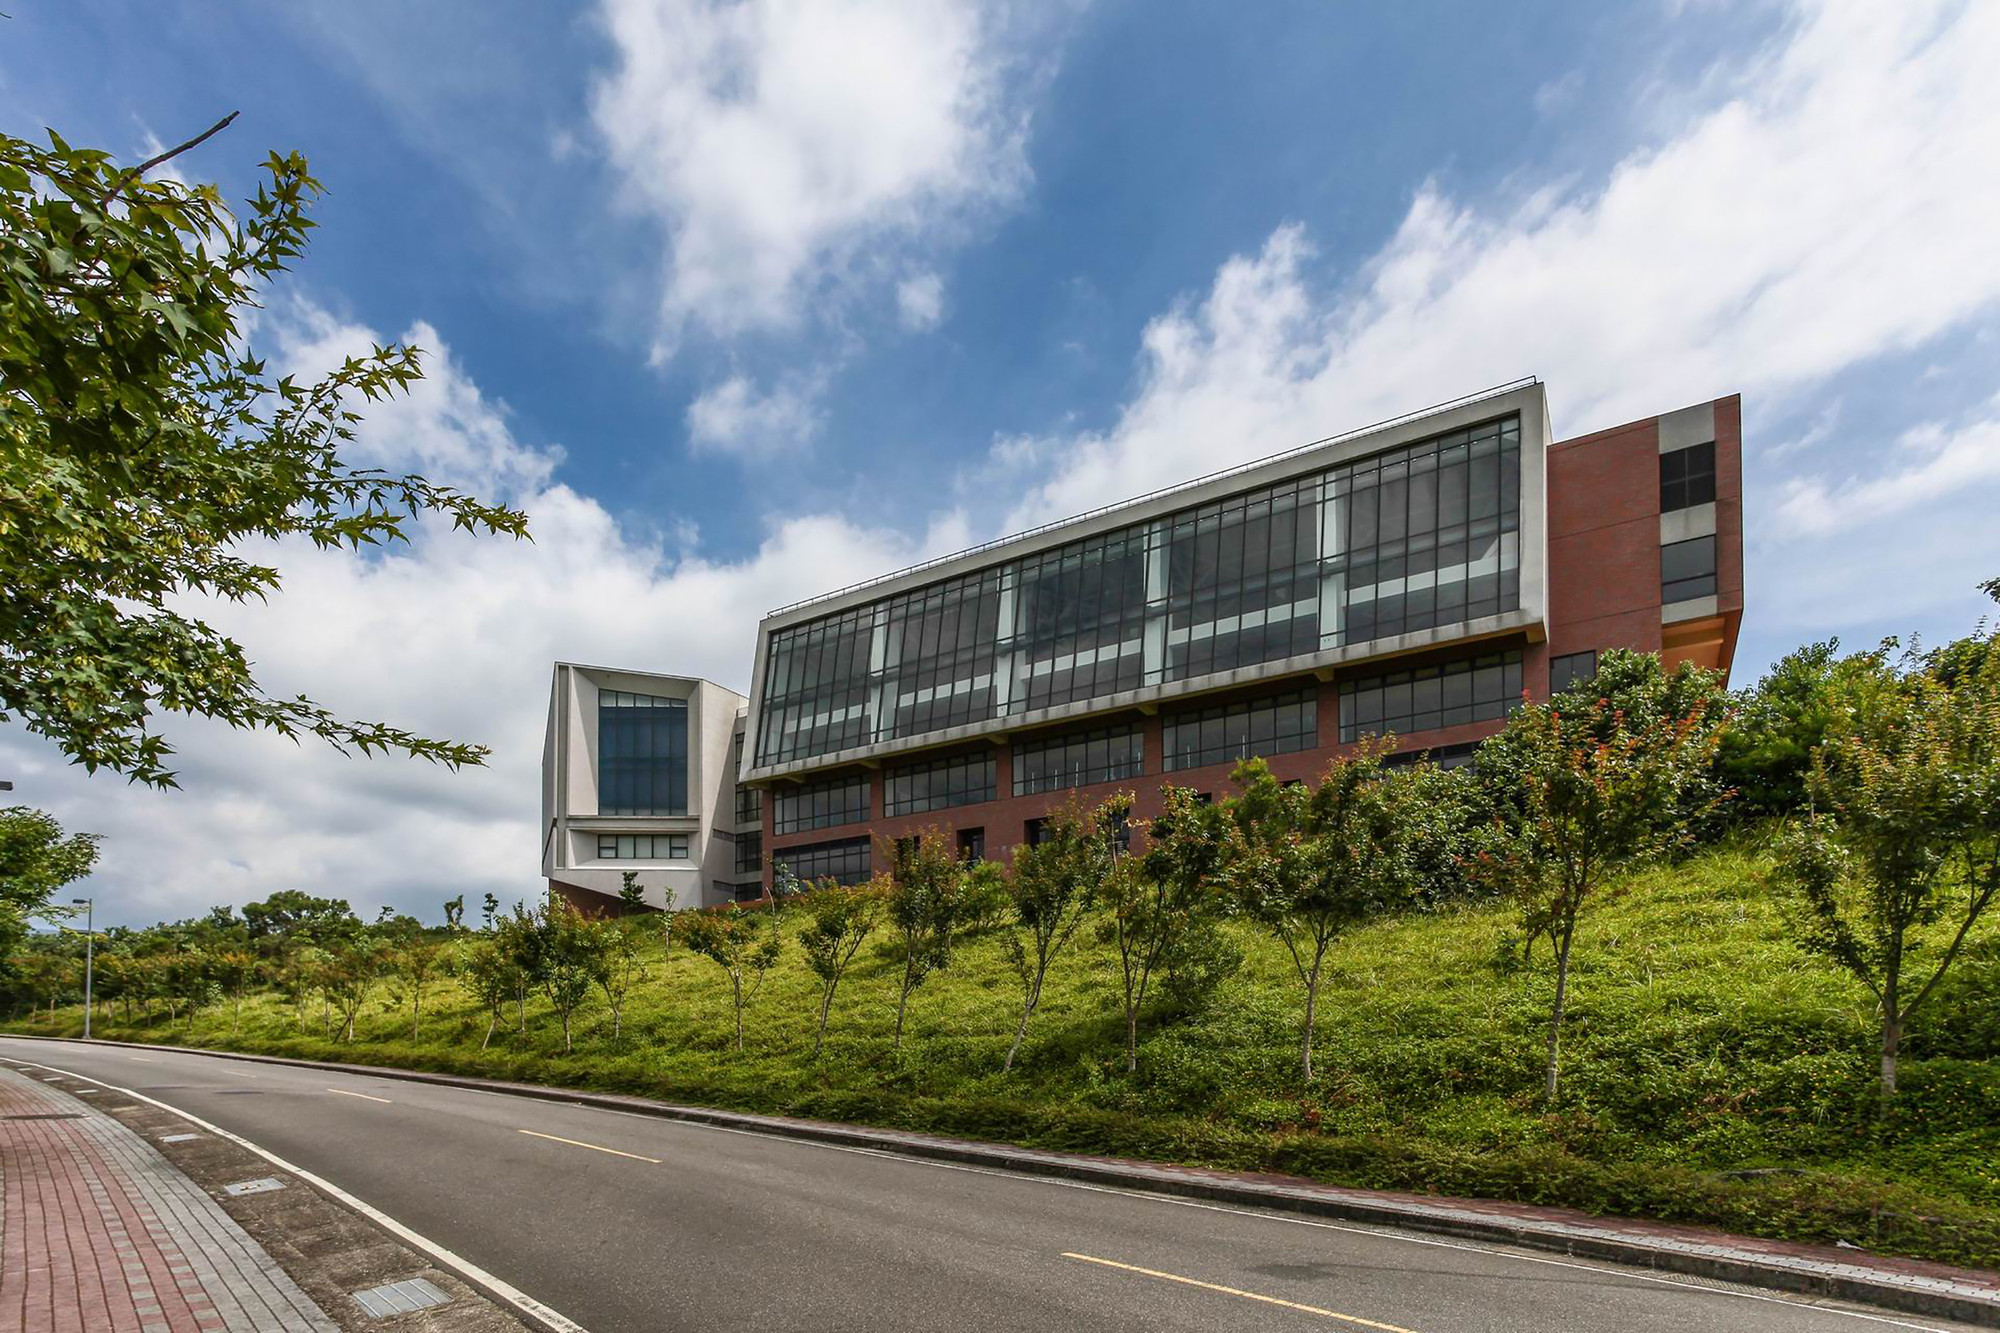 Phase II Building Complex, Mackay Medical College / J. J. Pan and Partners, Courtesy of JJPan